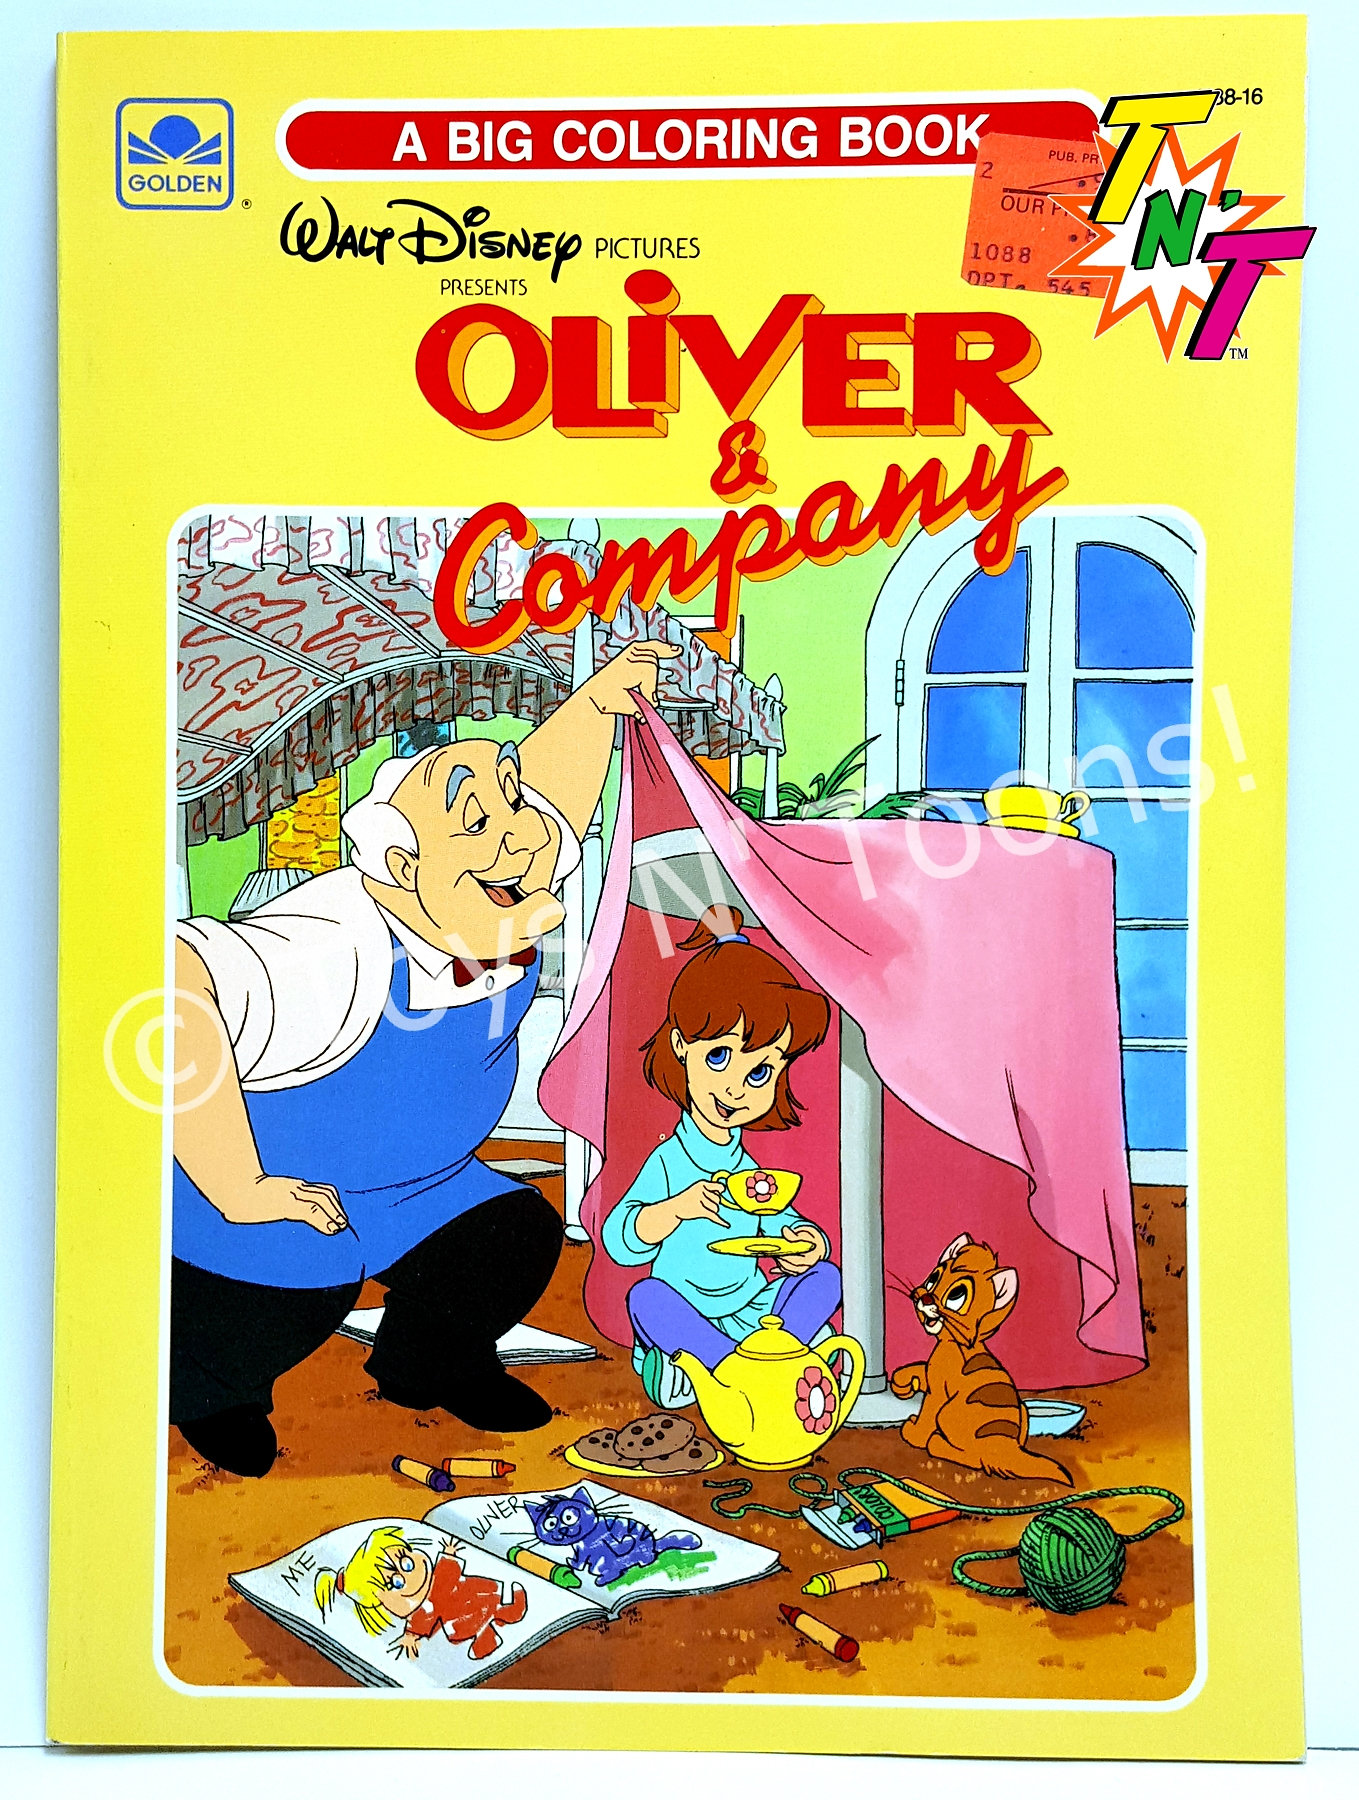 disneys oliver company big coloring and activity book by golden books 1981 24 pages to color and puzzles to play black and white art - Big Coloring Books